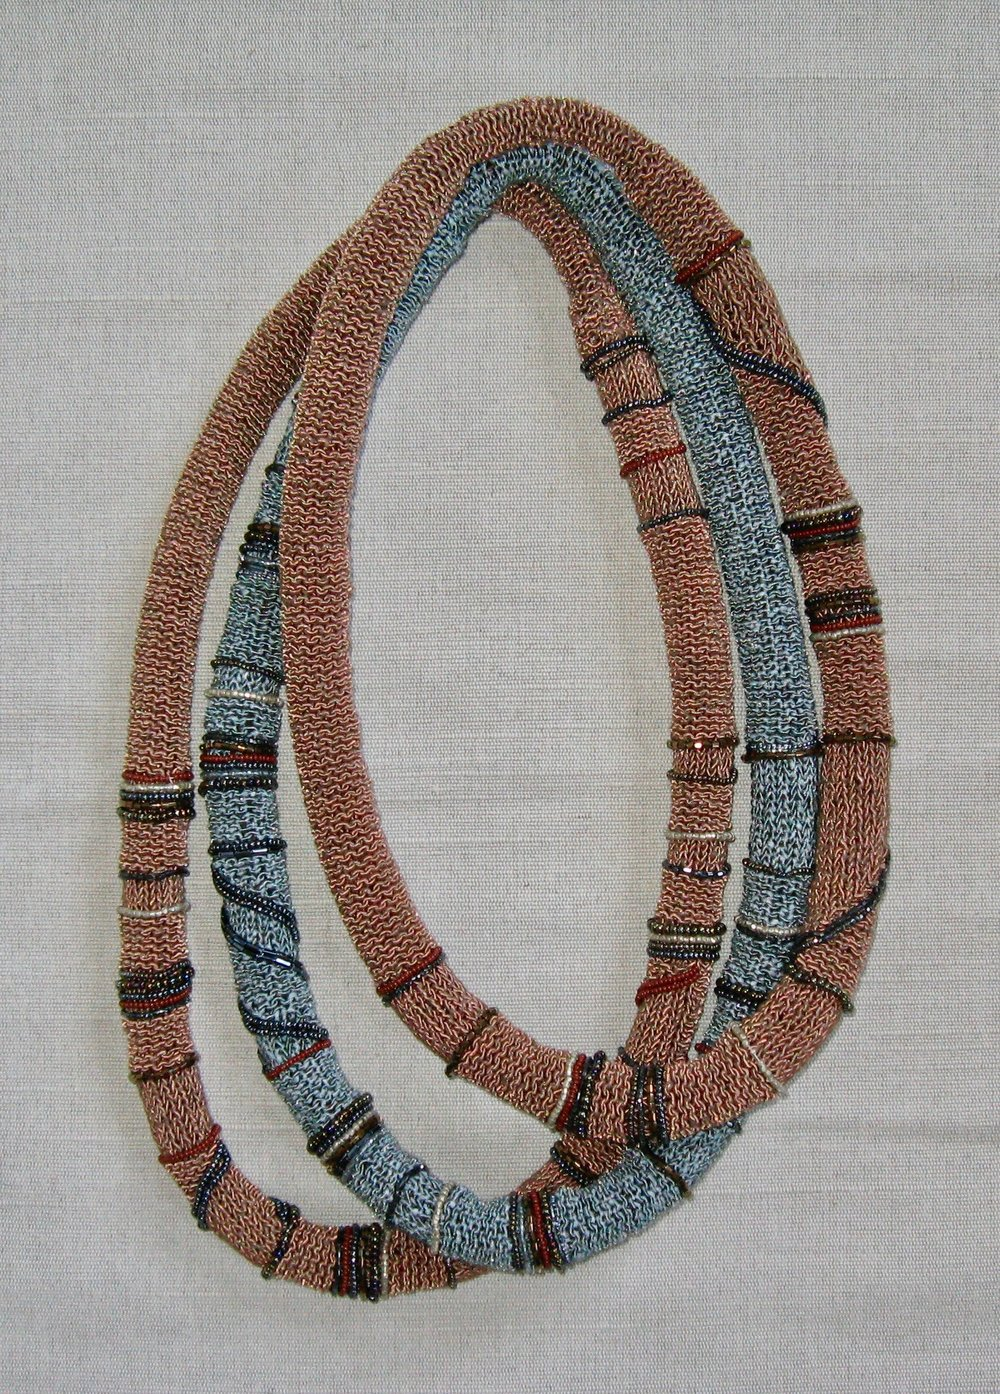 "Knit and Beaded Necklaces  2010 Approximately 28""to 30"" Rayon yarn and glass beads hand knit."